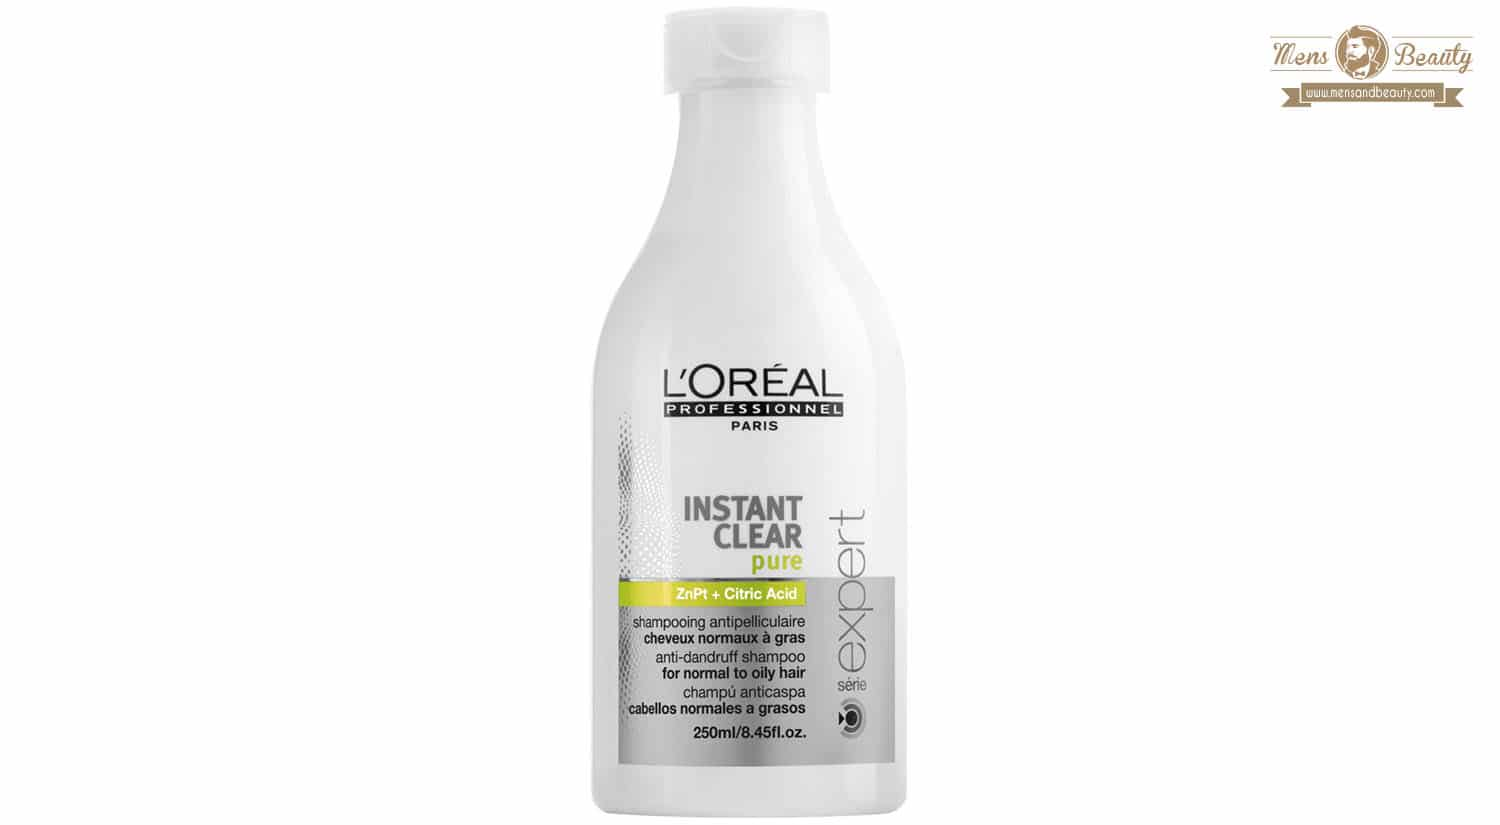 mejor champu anticaspa instant clear pure loreal men expert